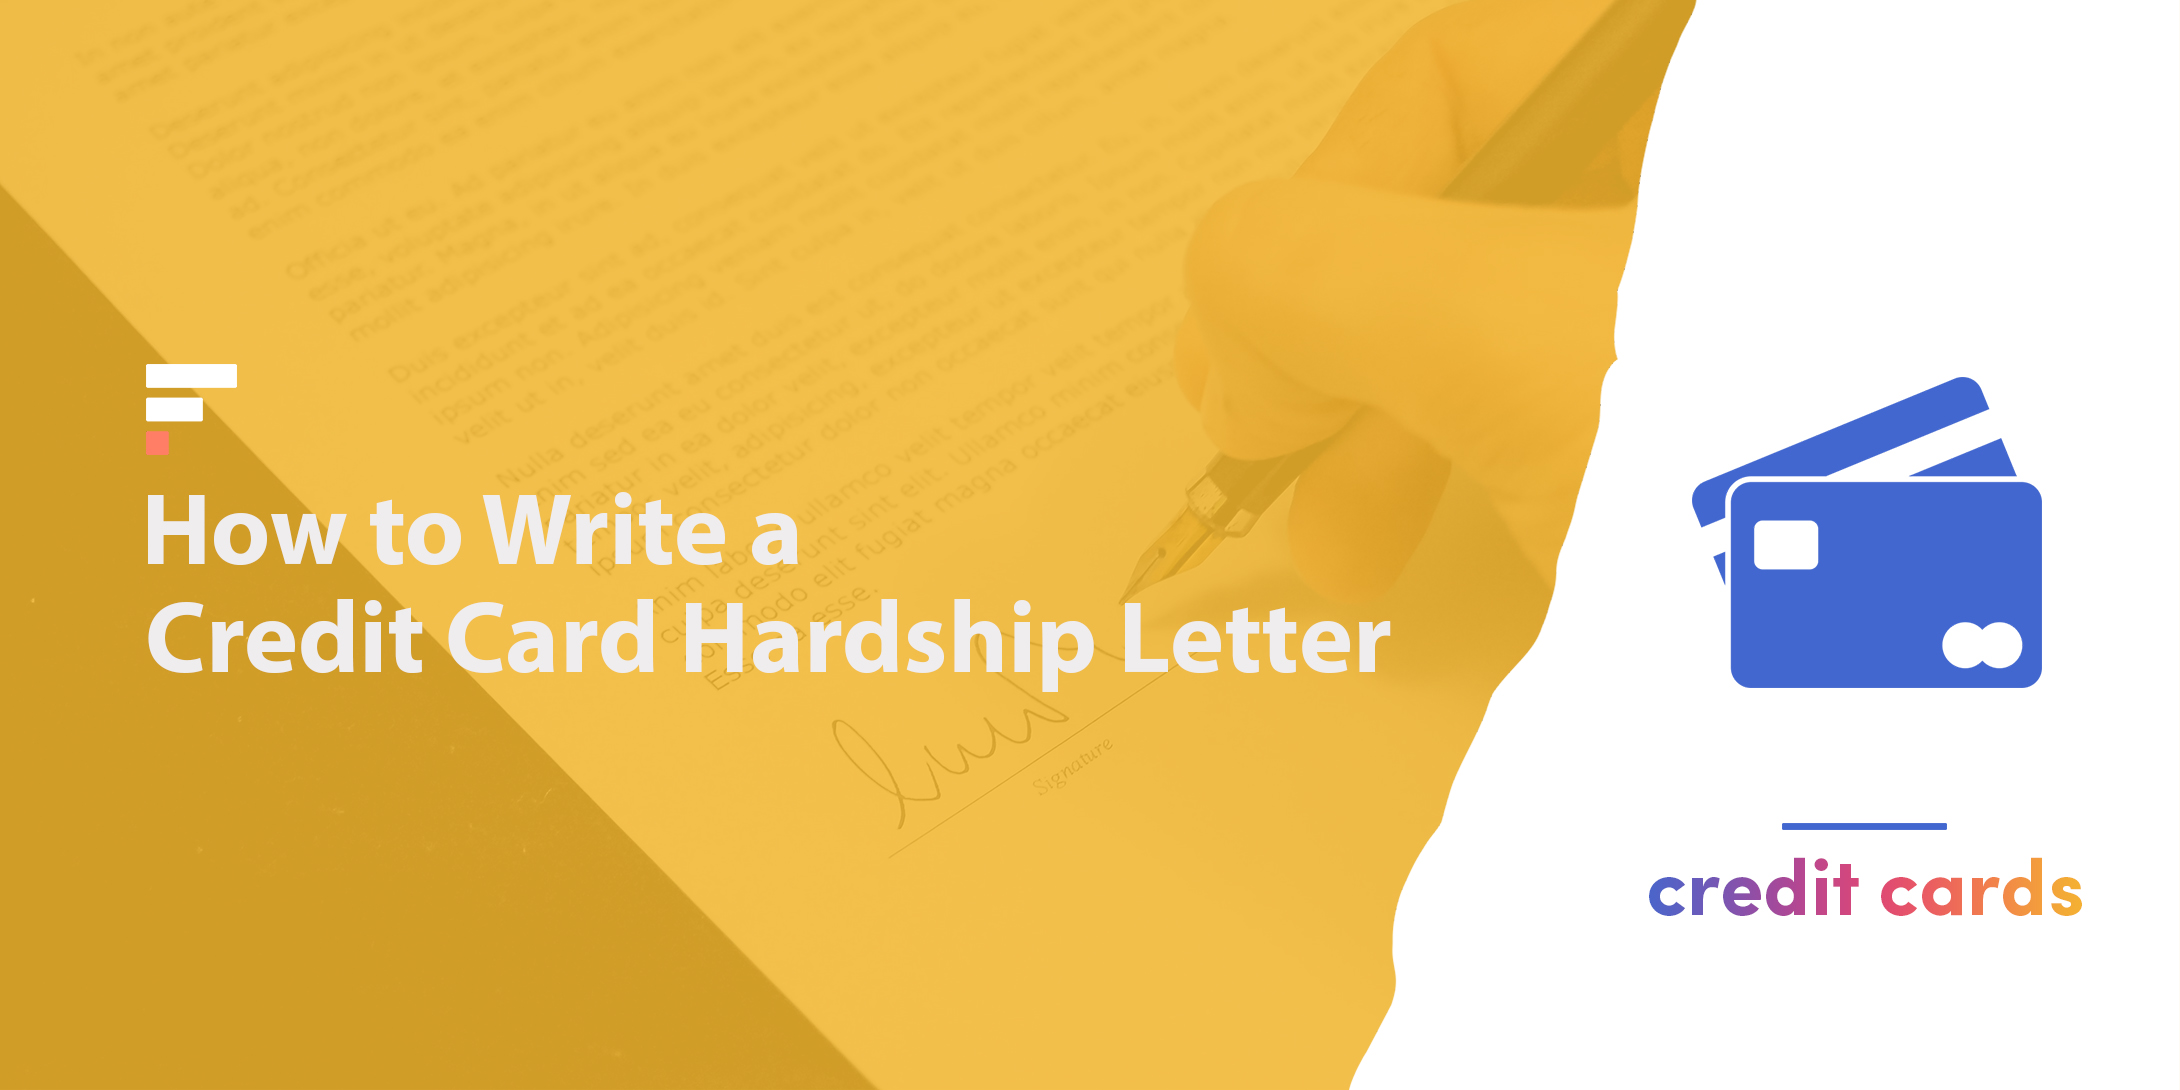 How to write a credit card hardship letter